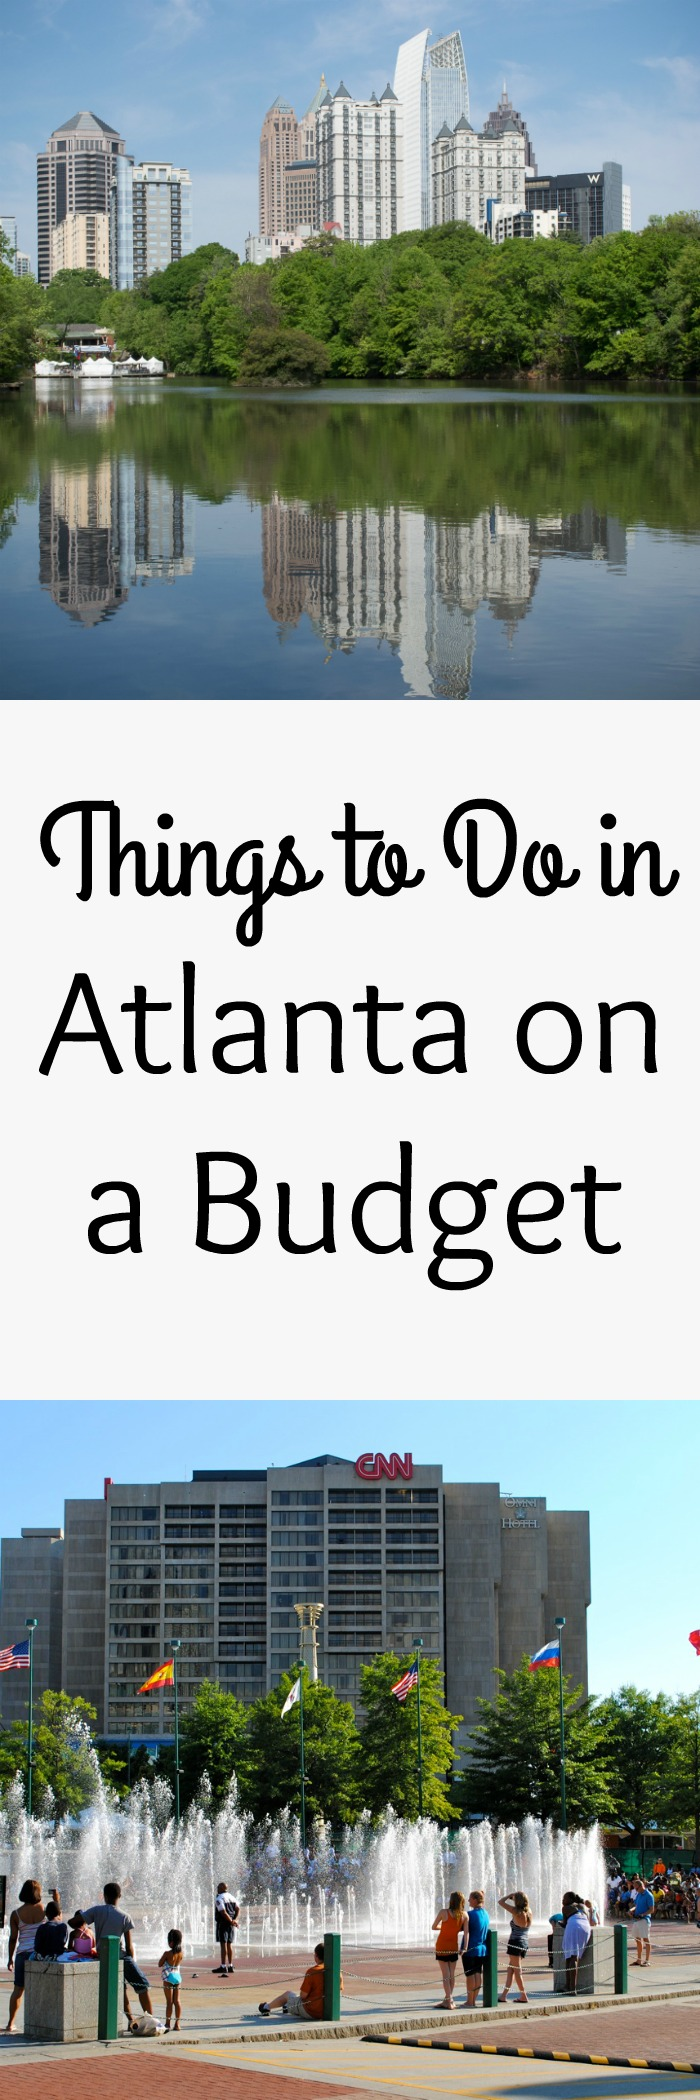 Looking for things to do in Atlanta? Trying to stay on a budget? Here are some fun things to do that are either free or there is a deal to save money.